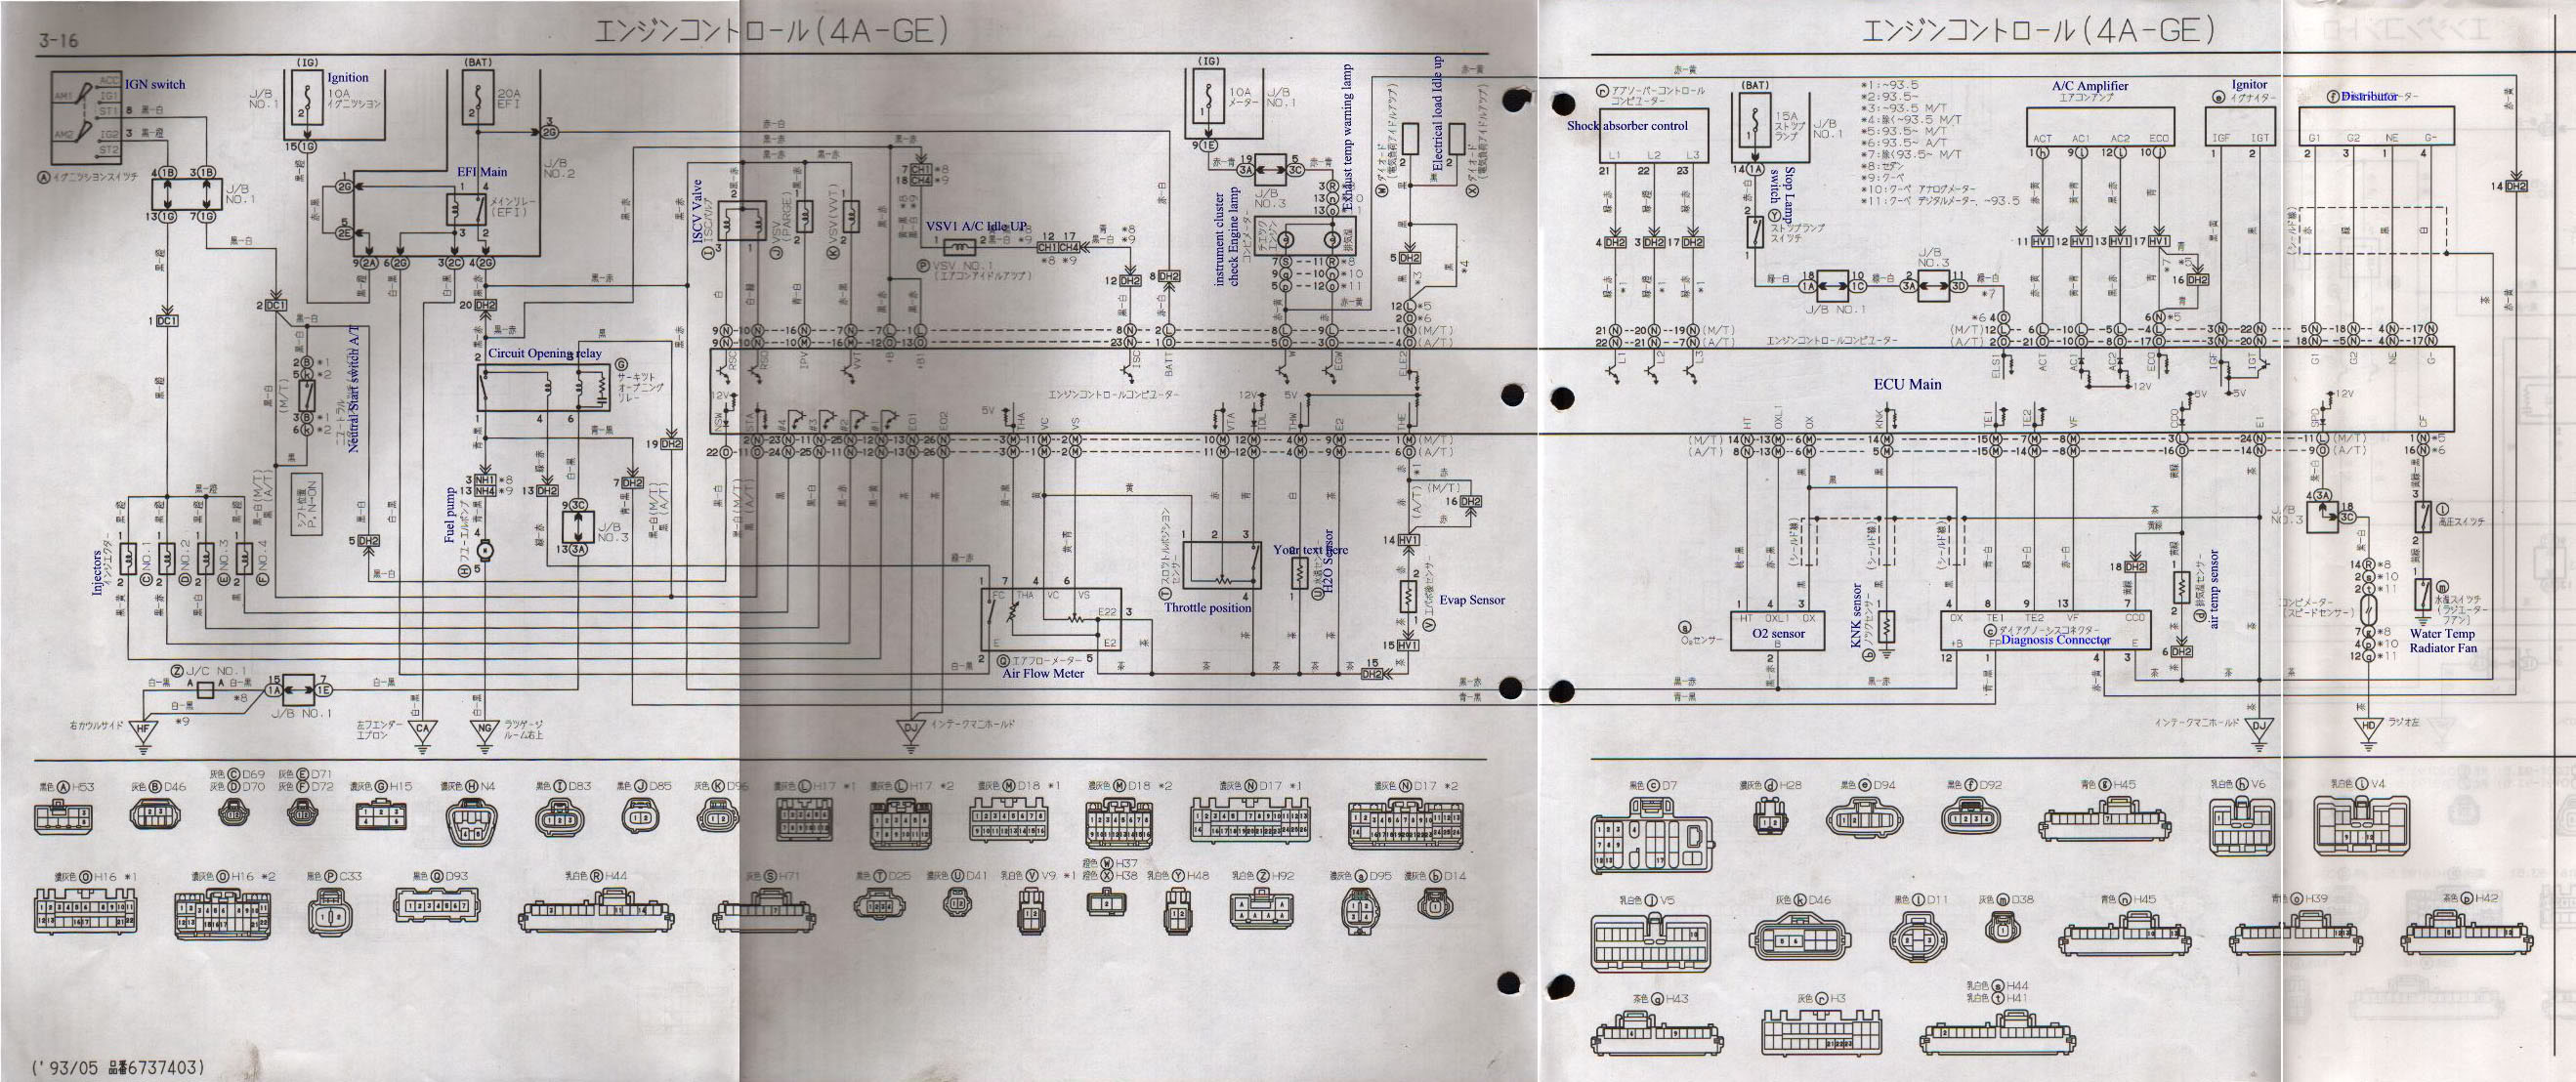 Toyota 4age Wiring Diagram - wiring diagram installation-why -  installation-why.labottegadisilvia.it | Workshop Wiring Schematic |  | installation-why.labottegadisilvia.it